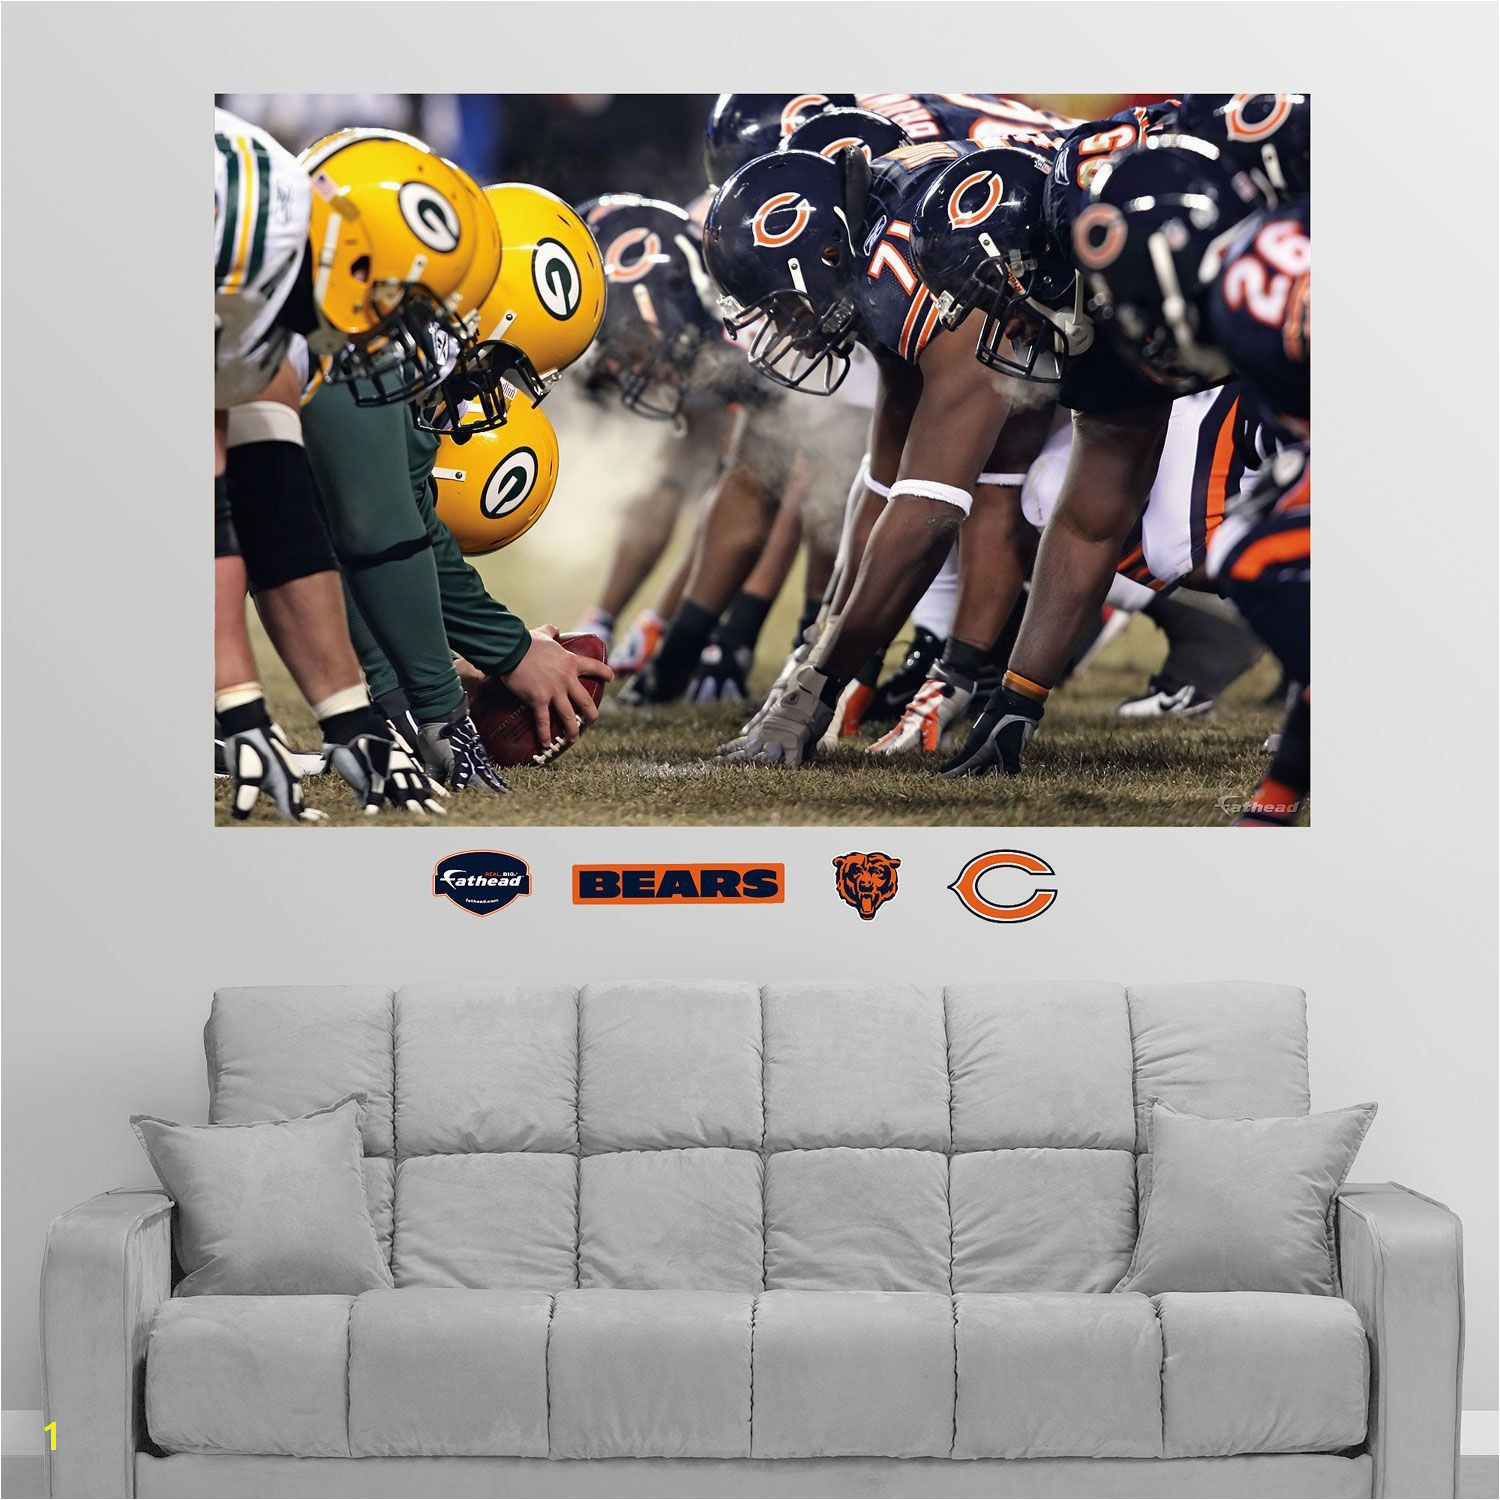 Fathead Chicago Green Bay Line of Scrimmage Wall Graphic Team